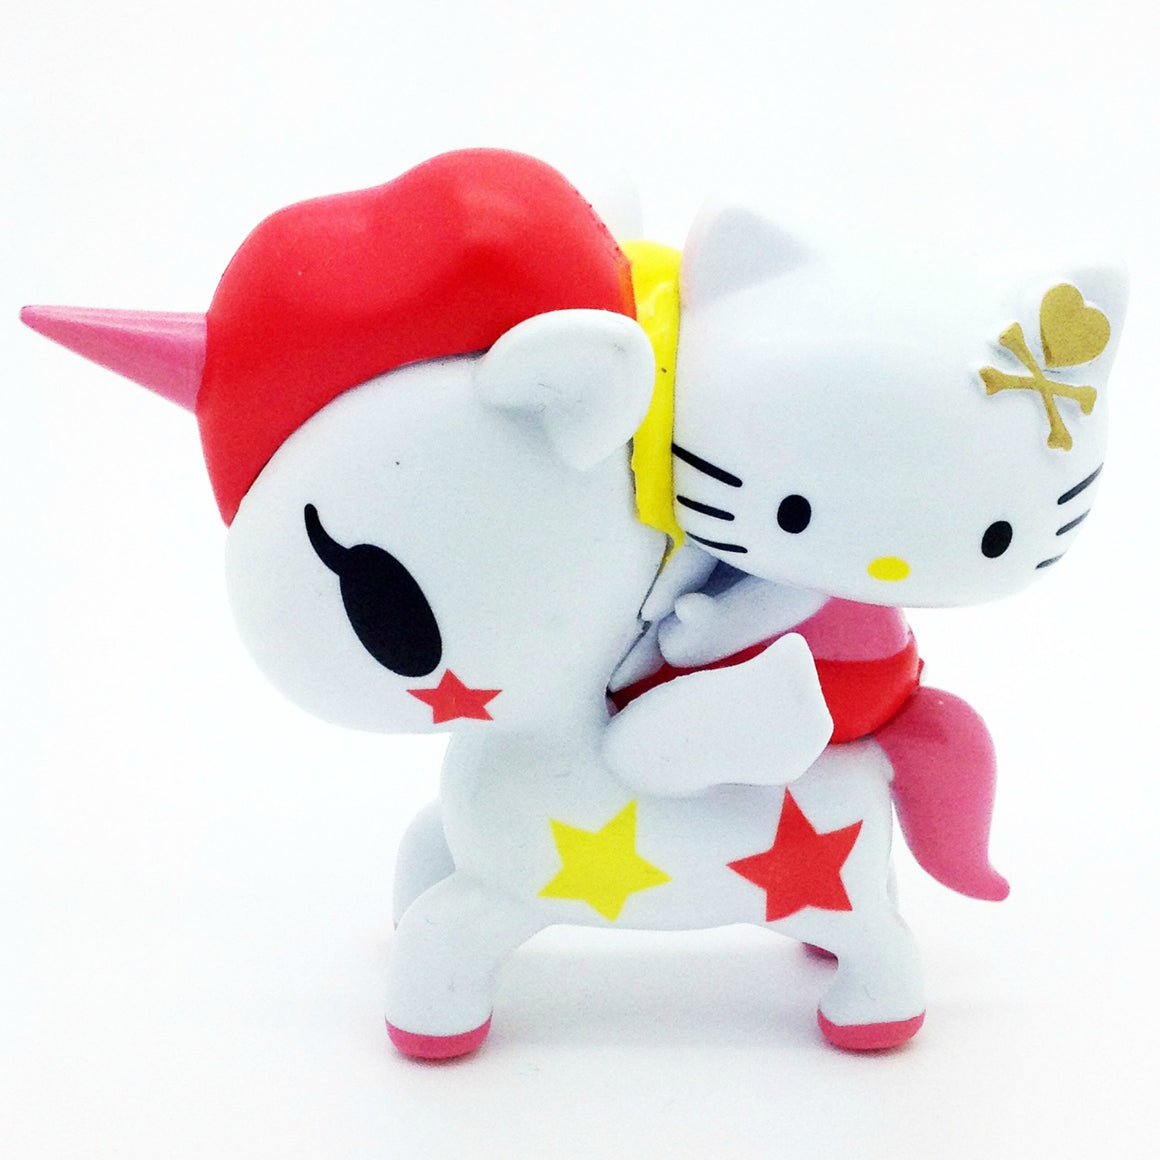 Tokidoki x Hello Kitty Blind Box - Hello Kitty on Stellina - Mindzai